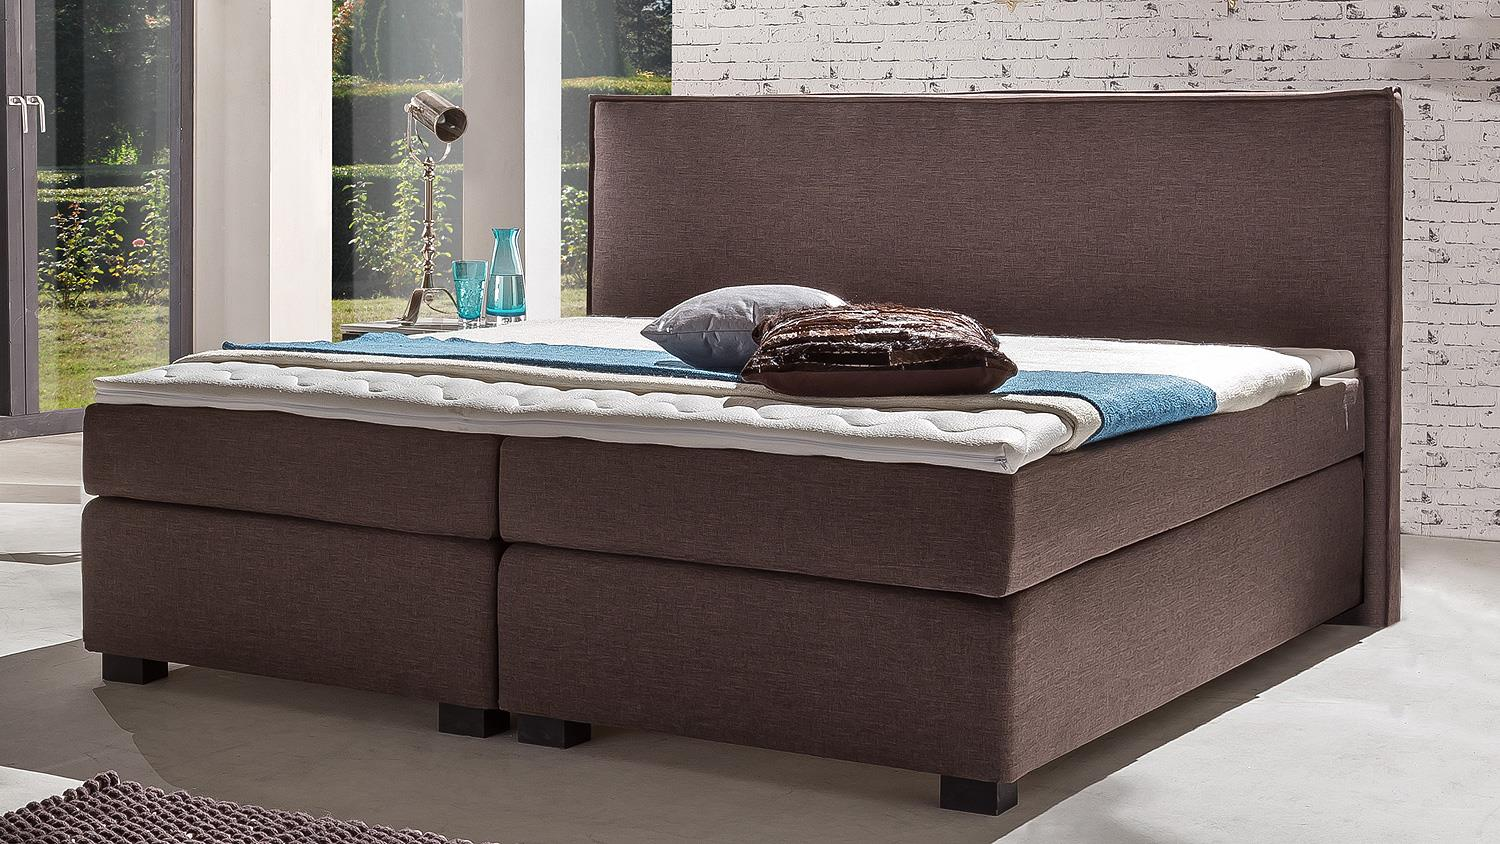 boxspringbett leonarda bett f r schlafzimmer in braun 180x200 cm. Black Bedroom Furniture Sets. Home Design Ideas